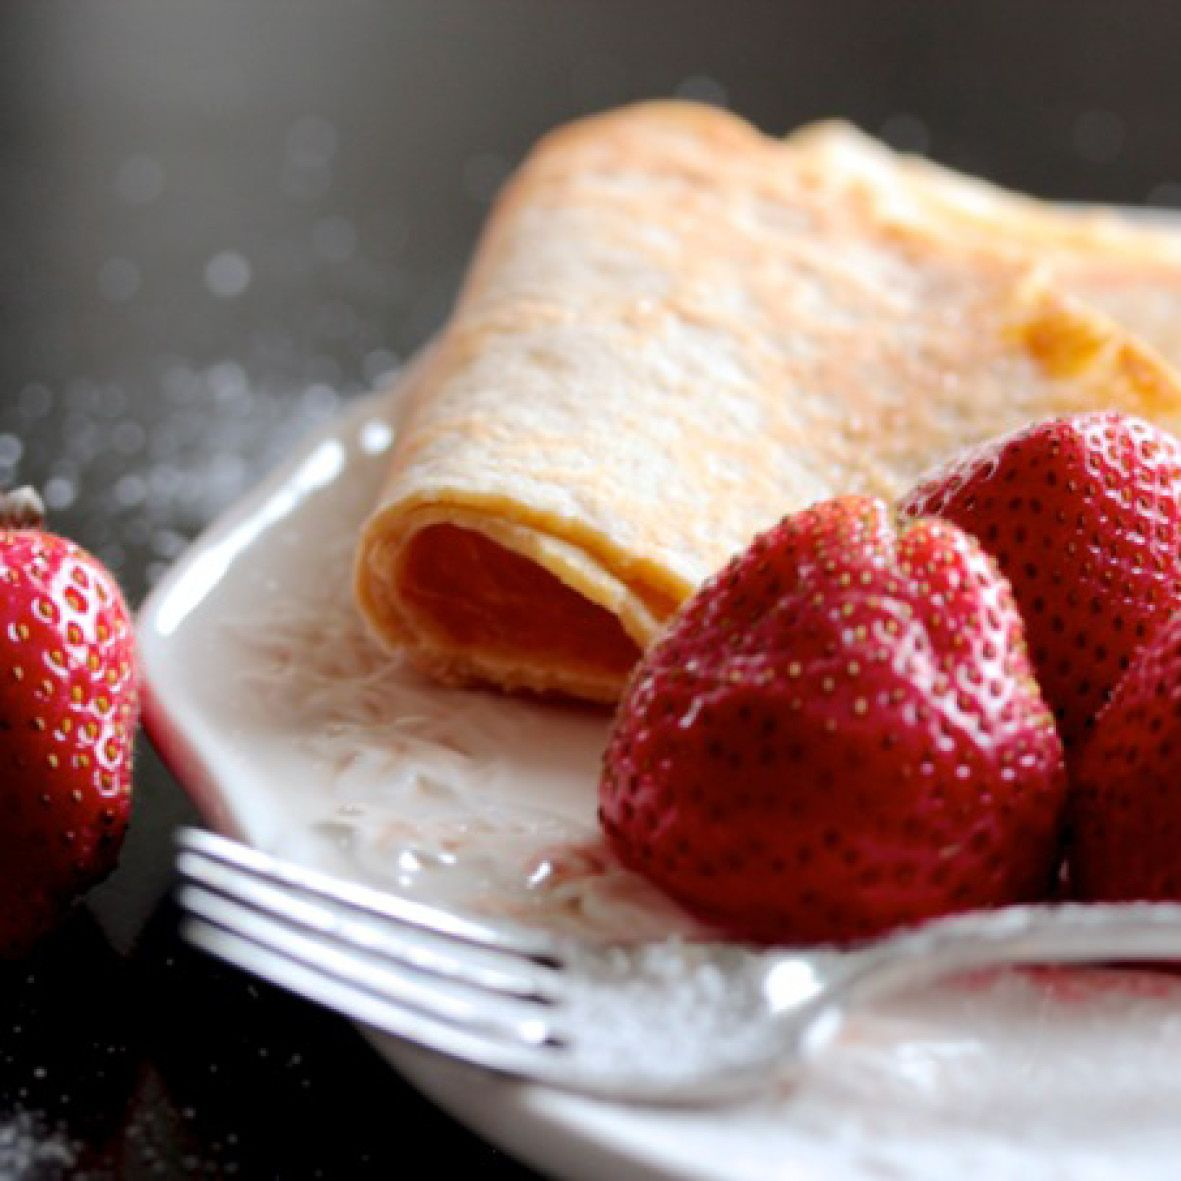 Strawberry_crepes.jpg